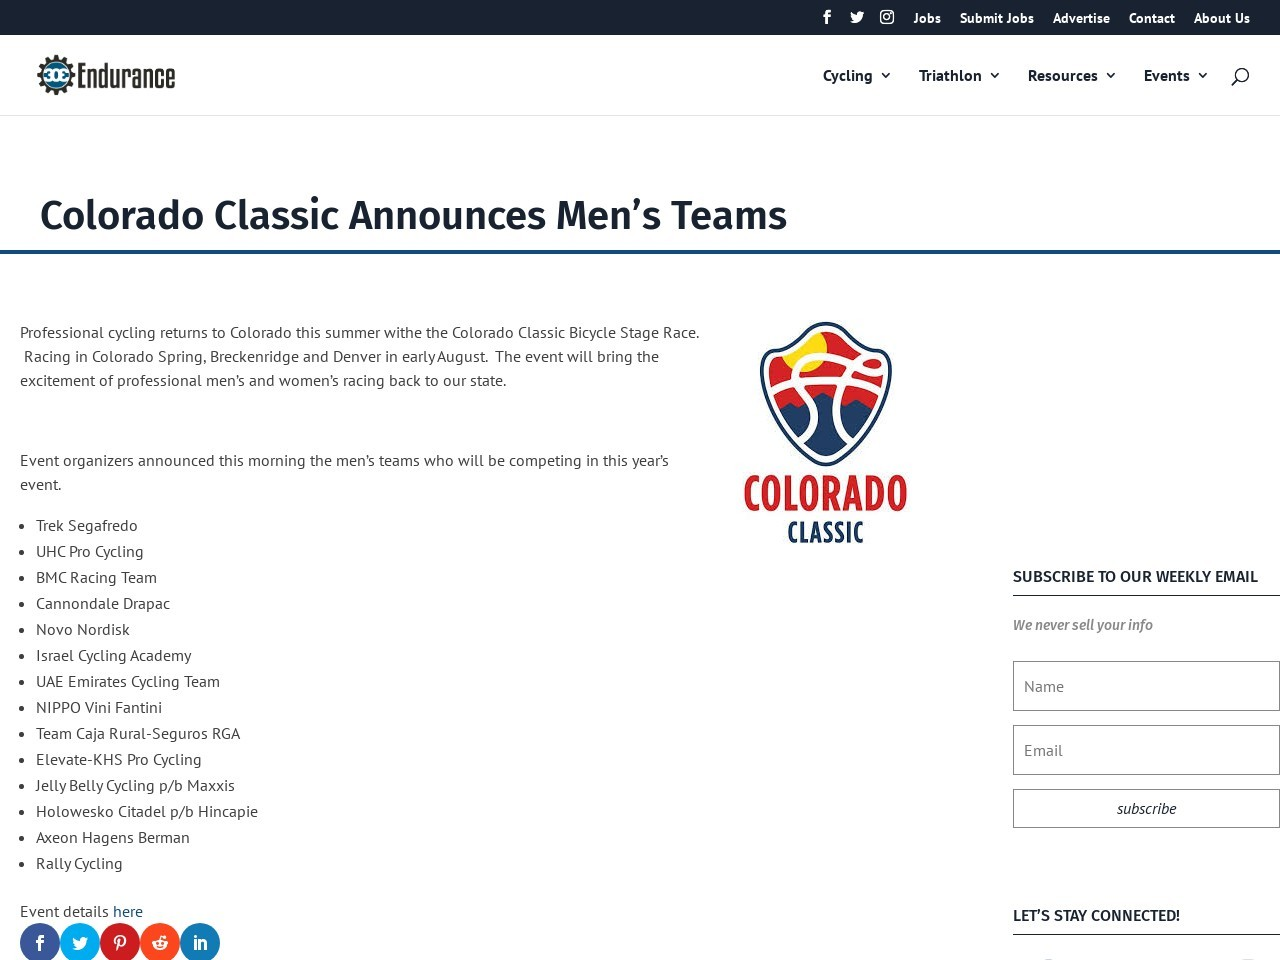 Colorado Classic Announces Men's Teams